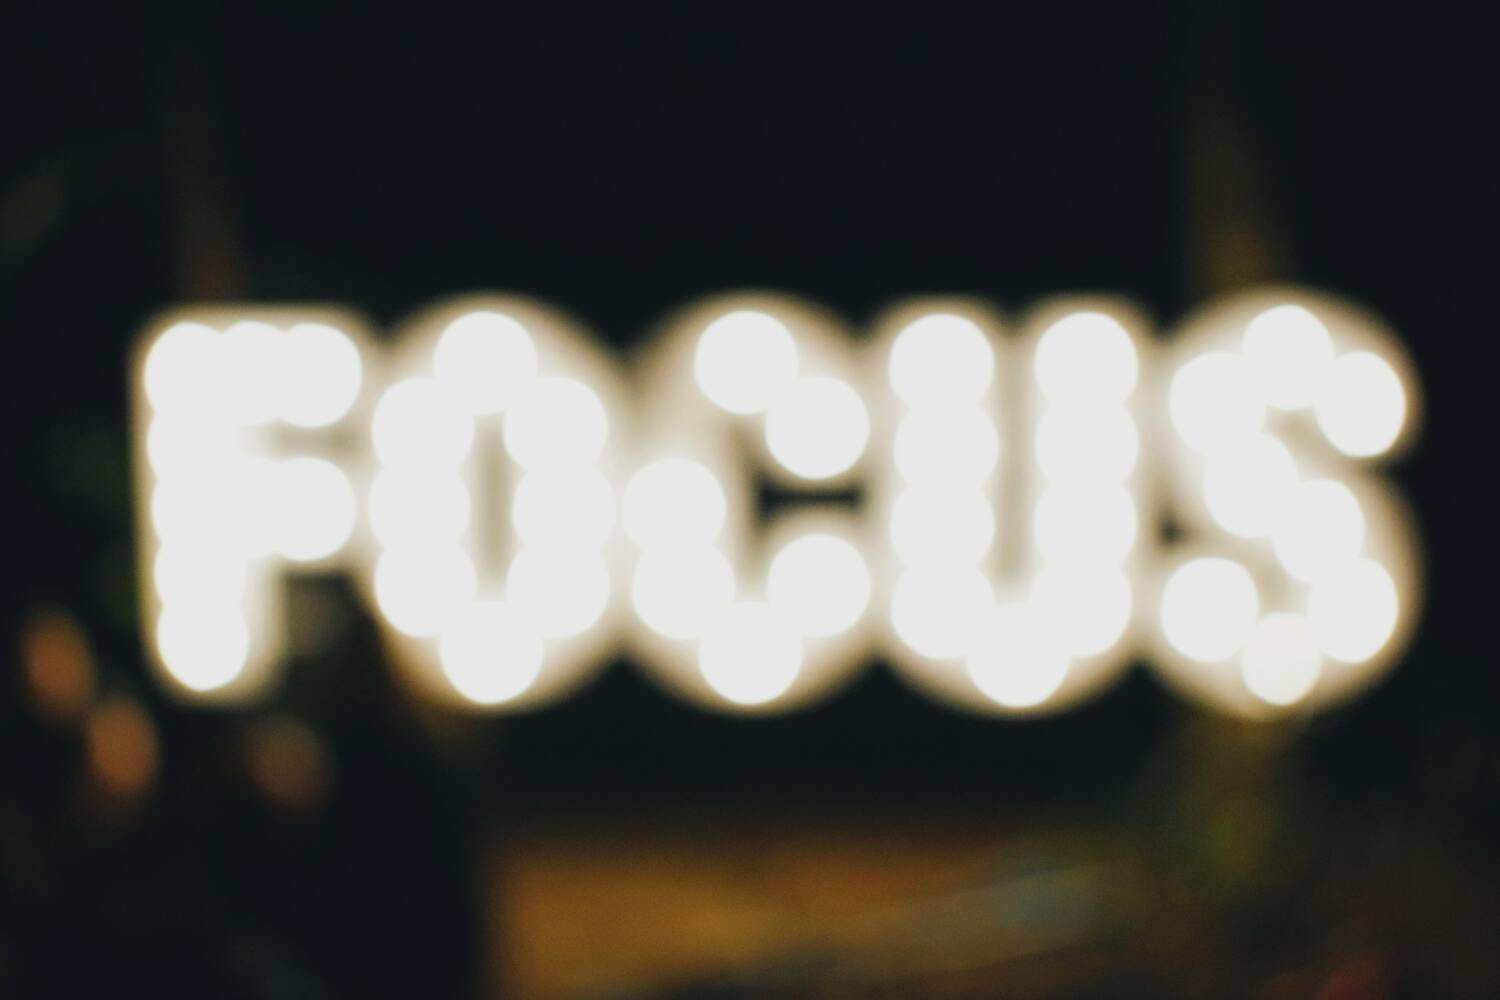 It can be hard to focus as a freelancer; use these tools to stay on task.